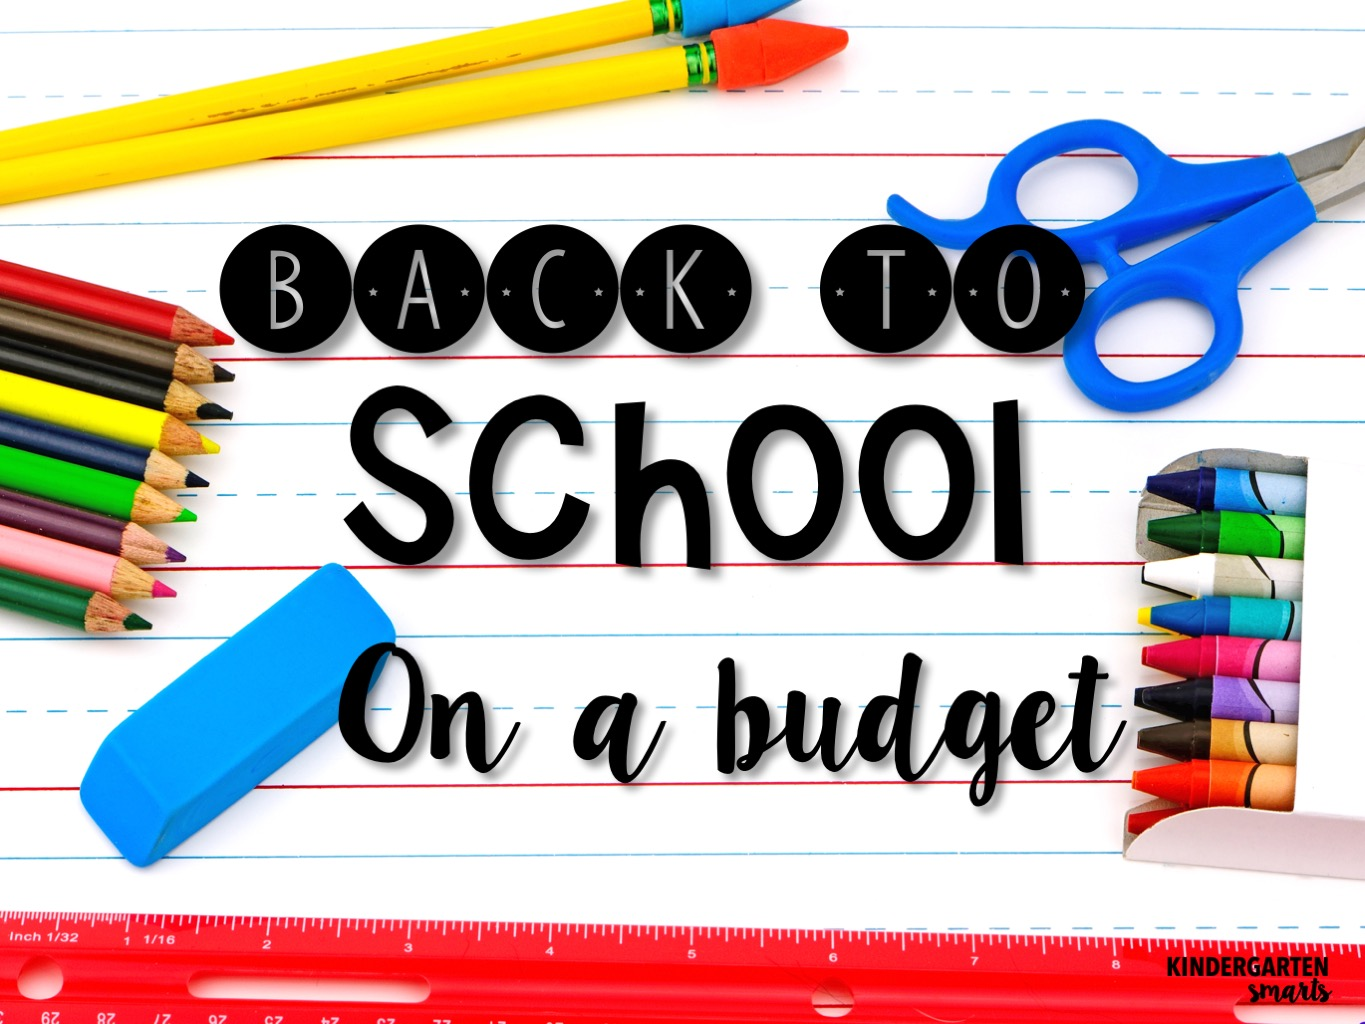 While on a budget, its best to buy thw minimum your child needs right away and work the other items into your budget over the next few months. While a number of people really do not want to think about back to school amidst festivities; it pays to be prepared so that back to school shopping doesn't become a budget .